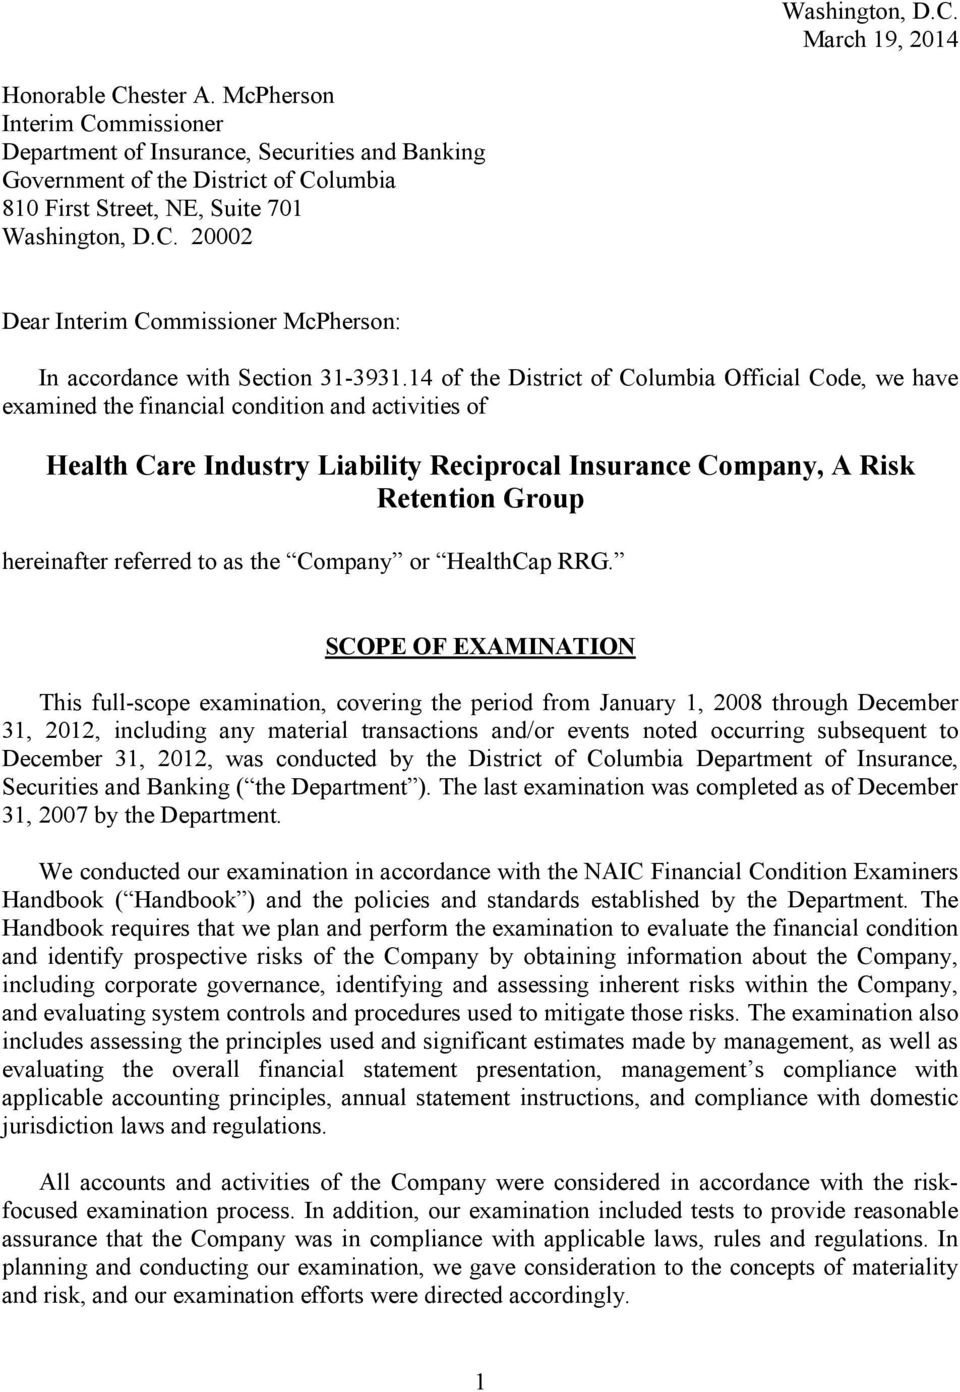 14 of the District of Columbia Official Code, we have examined the financial condition and activities of Health Care Industry Liability Reciprocal Insurance Company, A Risk Retention Group